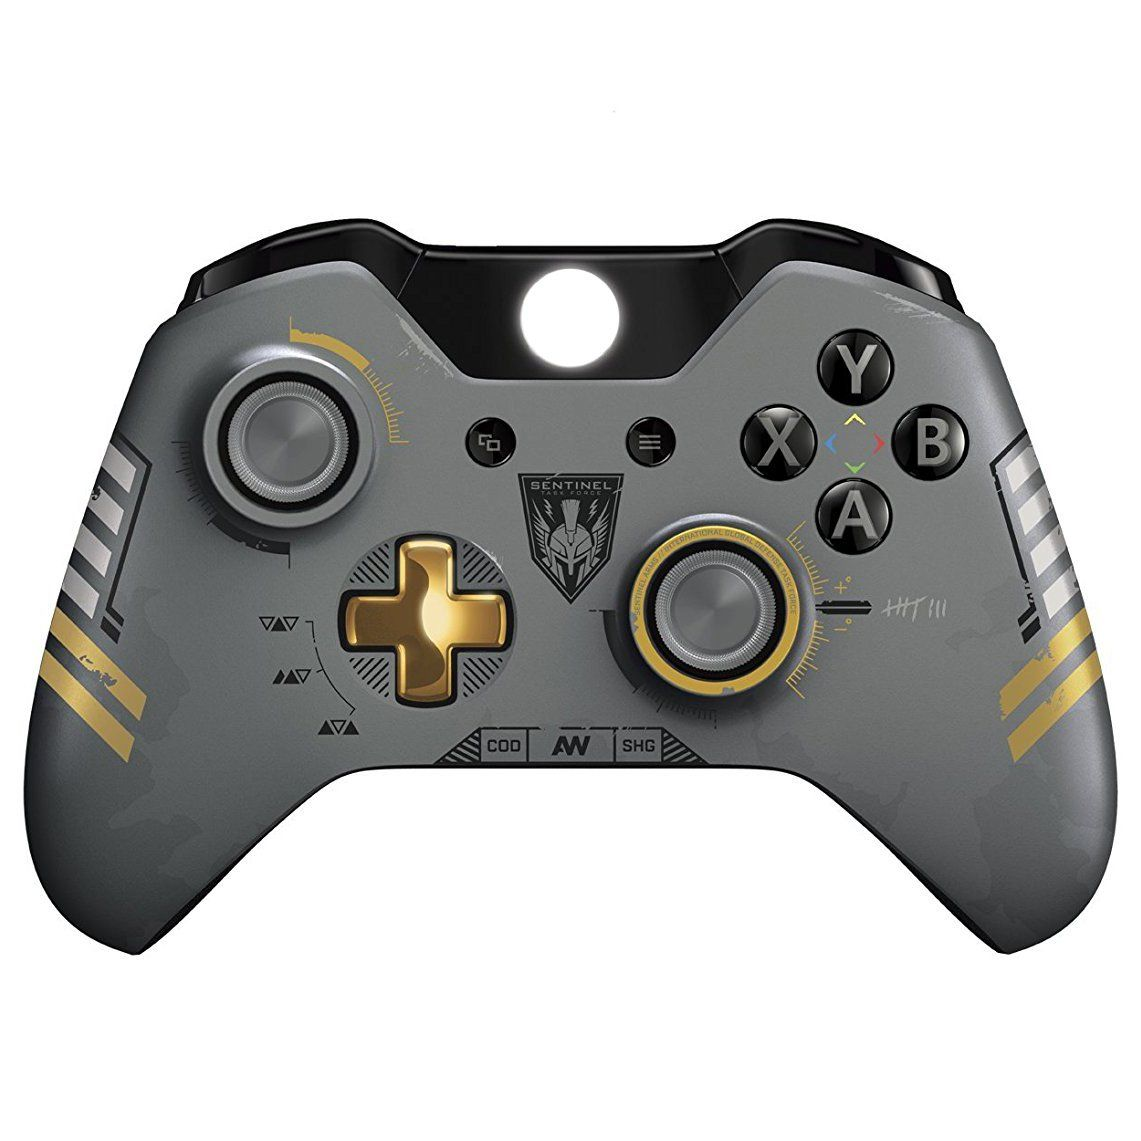 Feature Compatible With Xbox One Xbox One S And Windows 10 Includes Bluetooth Technology For Gaming On Win Xbox One Controller Xbox Accessories Call Of Duty